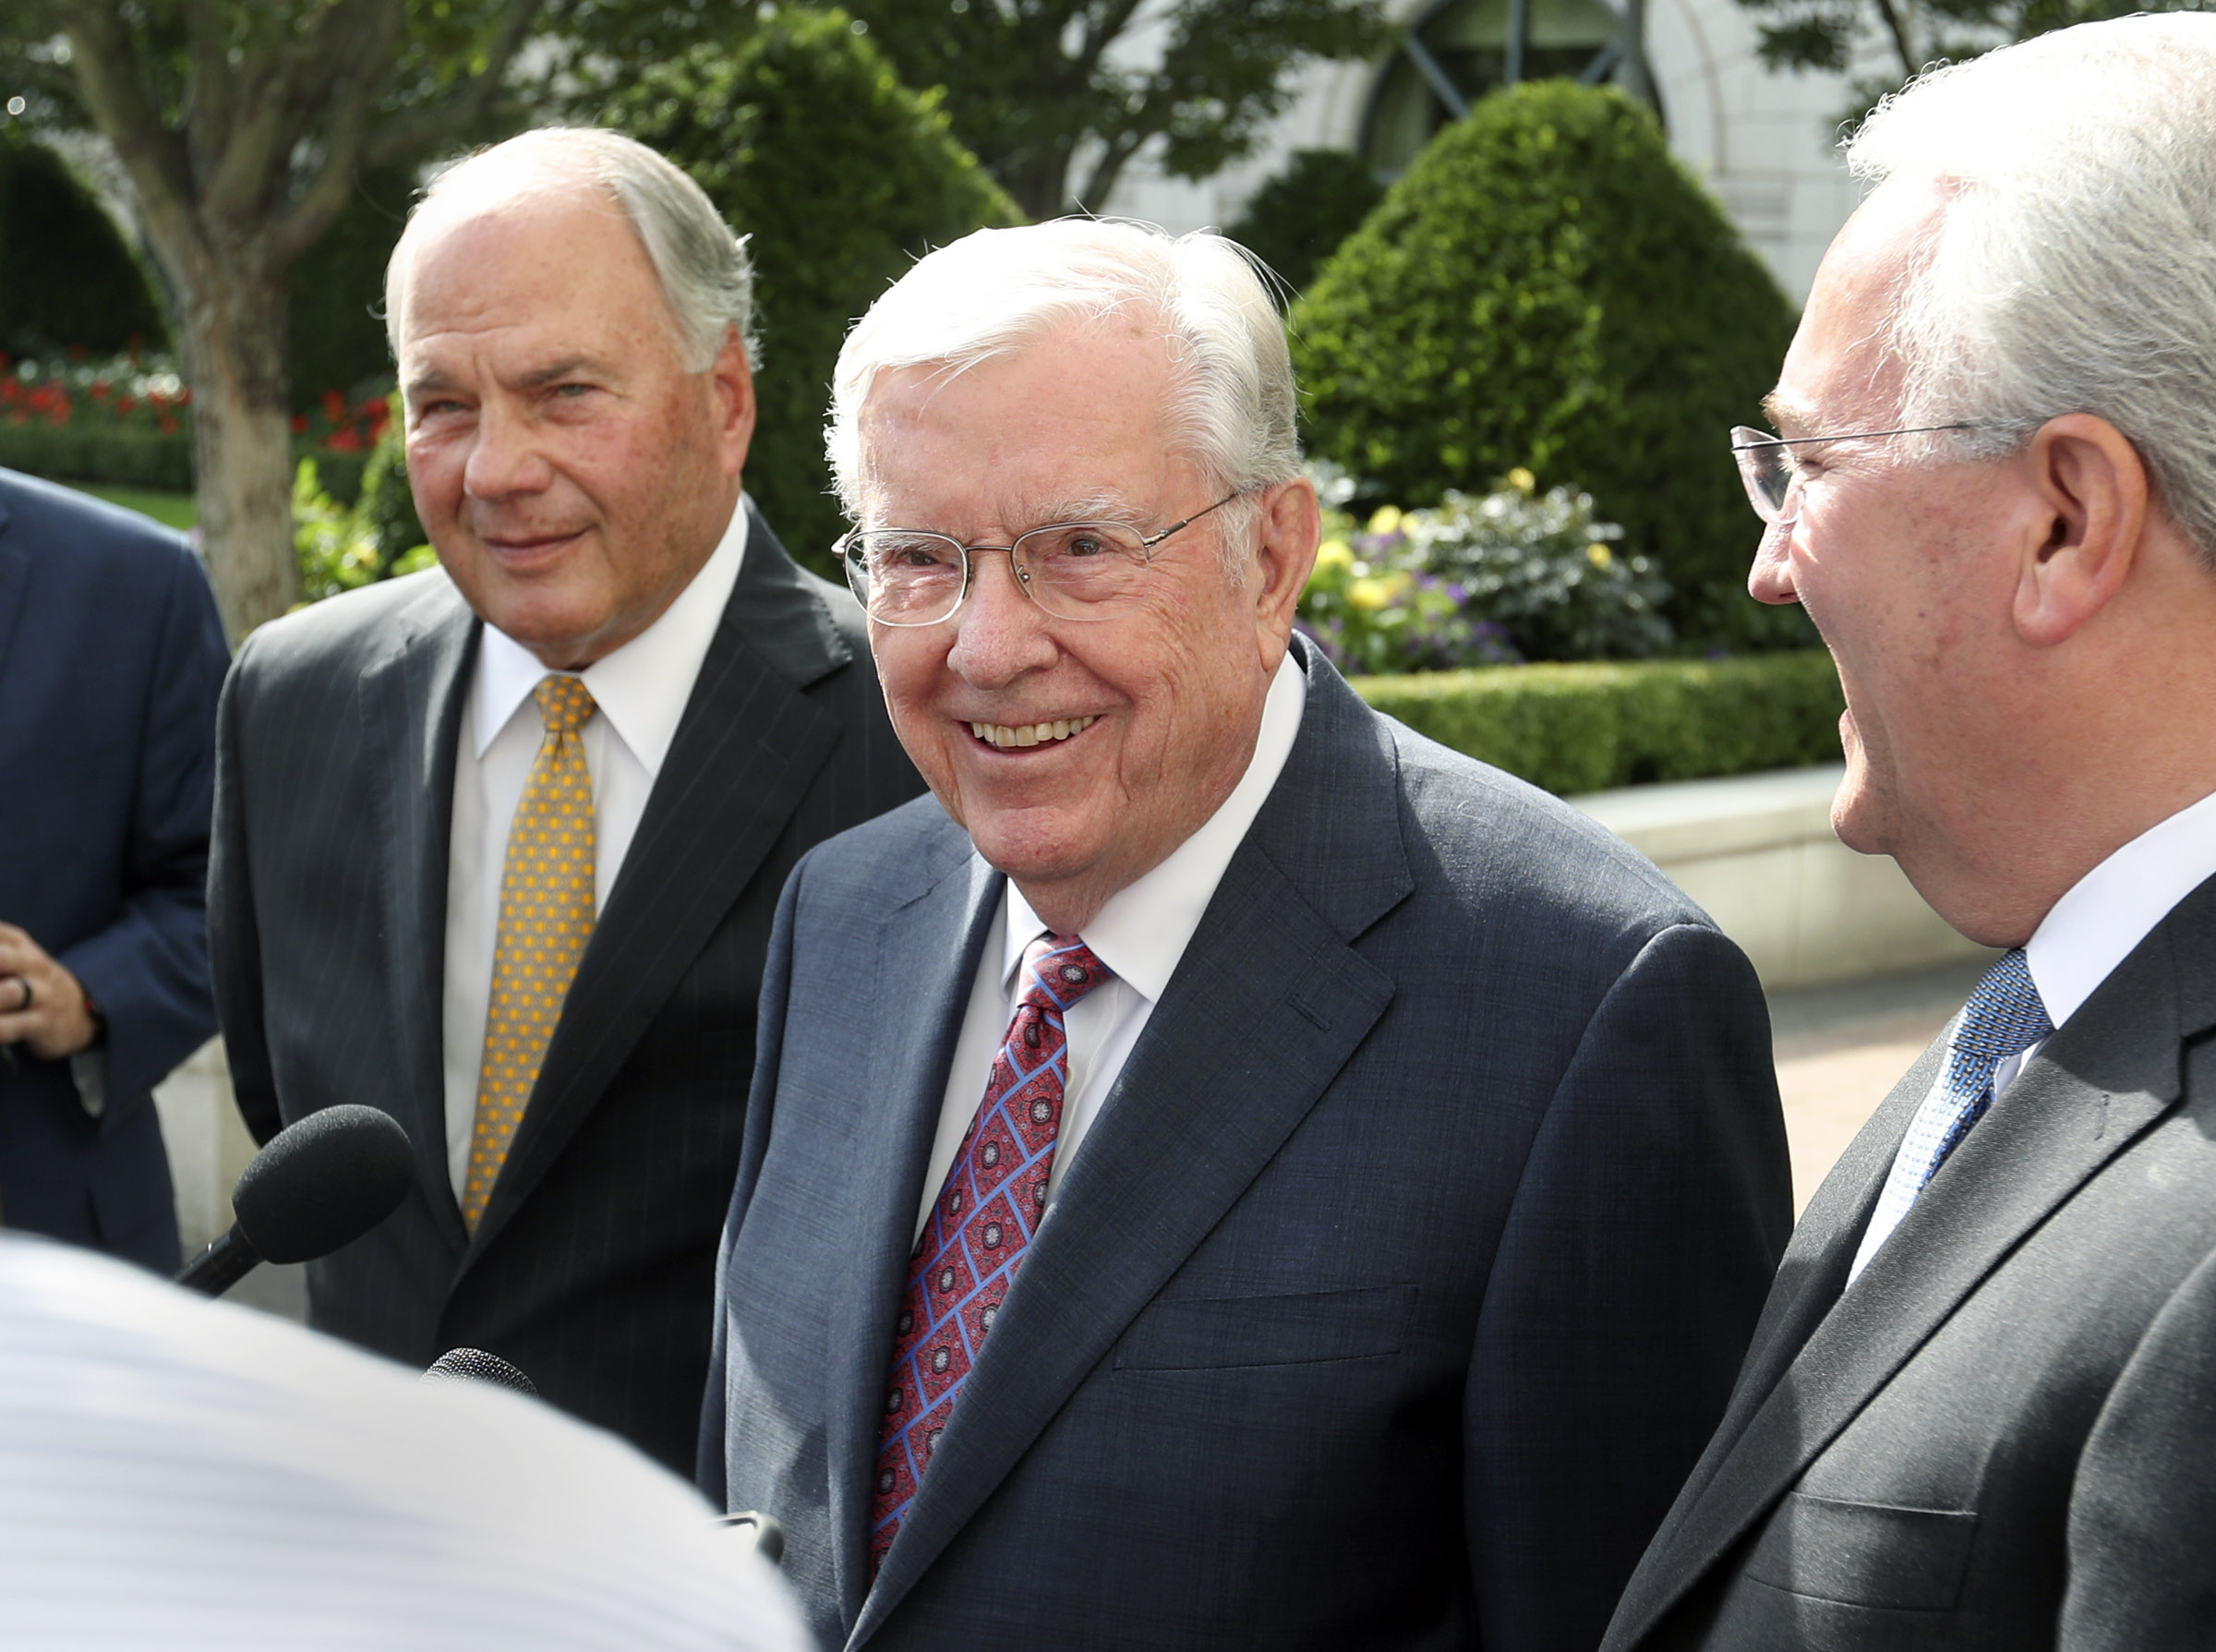 President M. Russell Ballard, center, acting president of the Quorum of the Twelve Apostles, is flanked by Elder Ronald A. Rasband, a member of the Quorum of the Twelve Apostles, left, and Elder Jack N. Gerard, a General Authority Seventy, right, as they speak to members of the media following a meeting with Vice President Mike Pence at the Grand America Hotel in Salt Lake City on Thursday, Aug. 22, 2019.